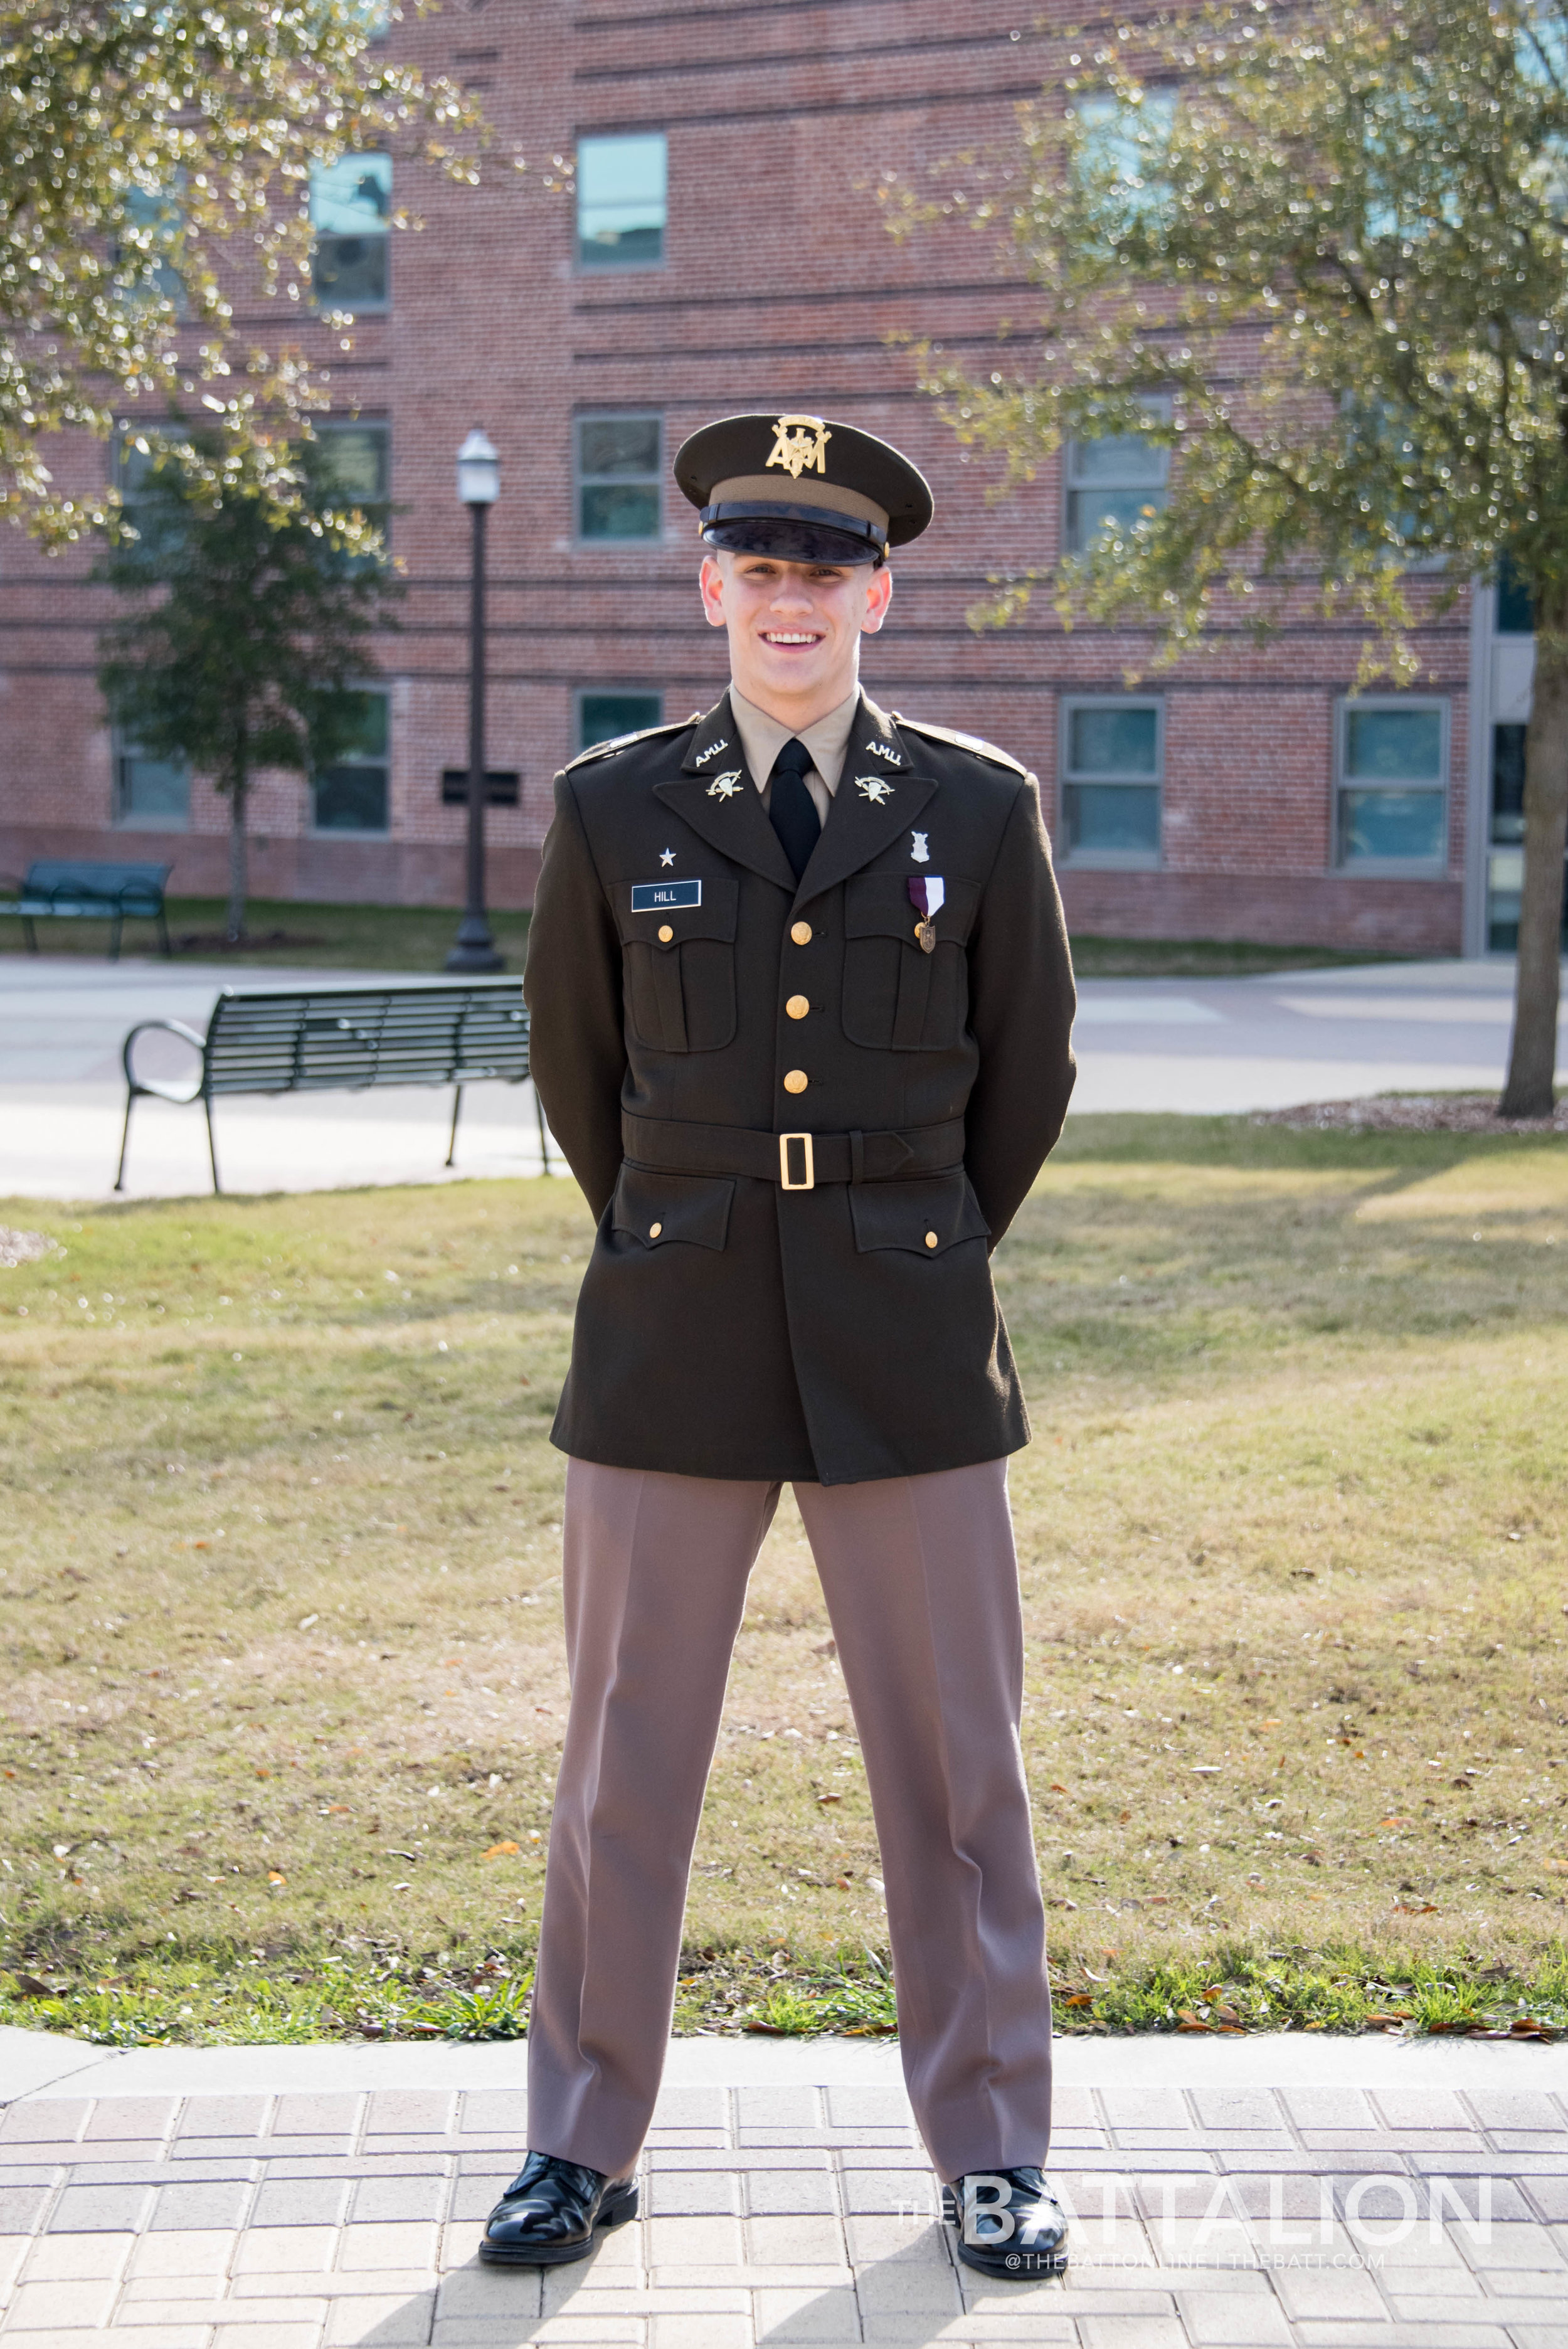 Class A Uniform - Also known as A's, these uniforms are worn to special occasions such as Muster or Silver Taps. Freshman Mark Hill, photographed by Cassie Stricker.